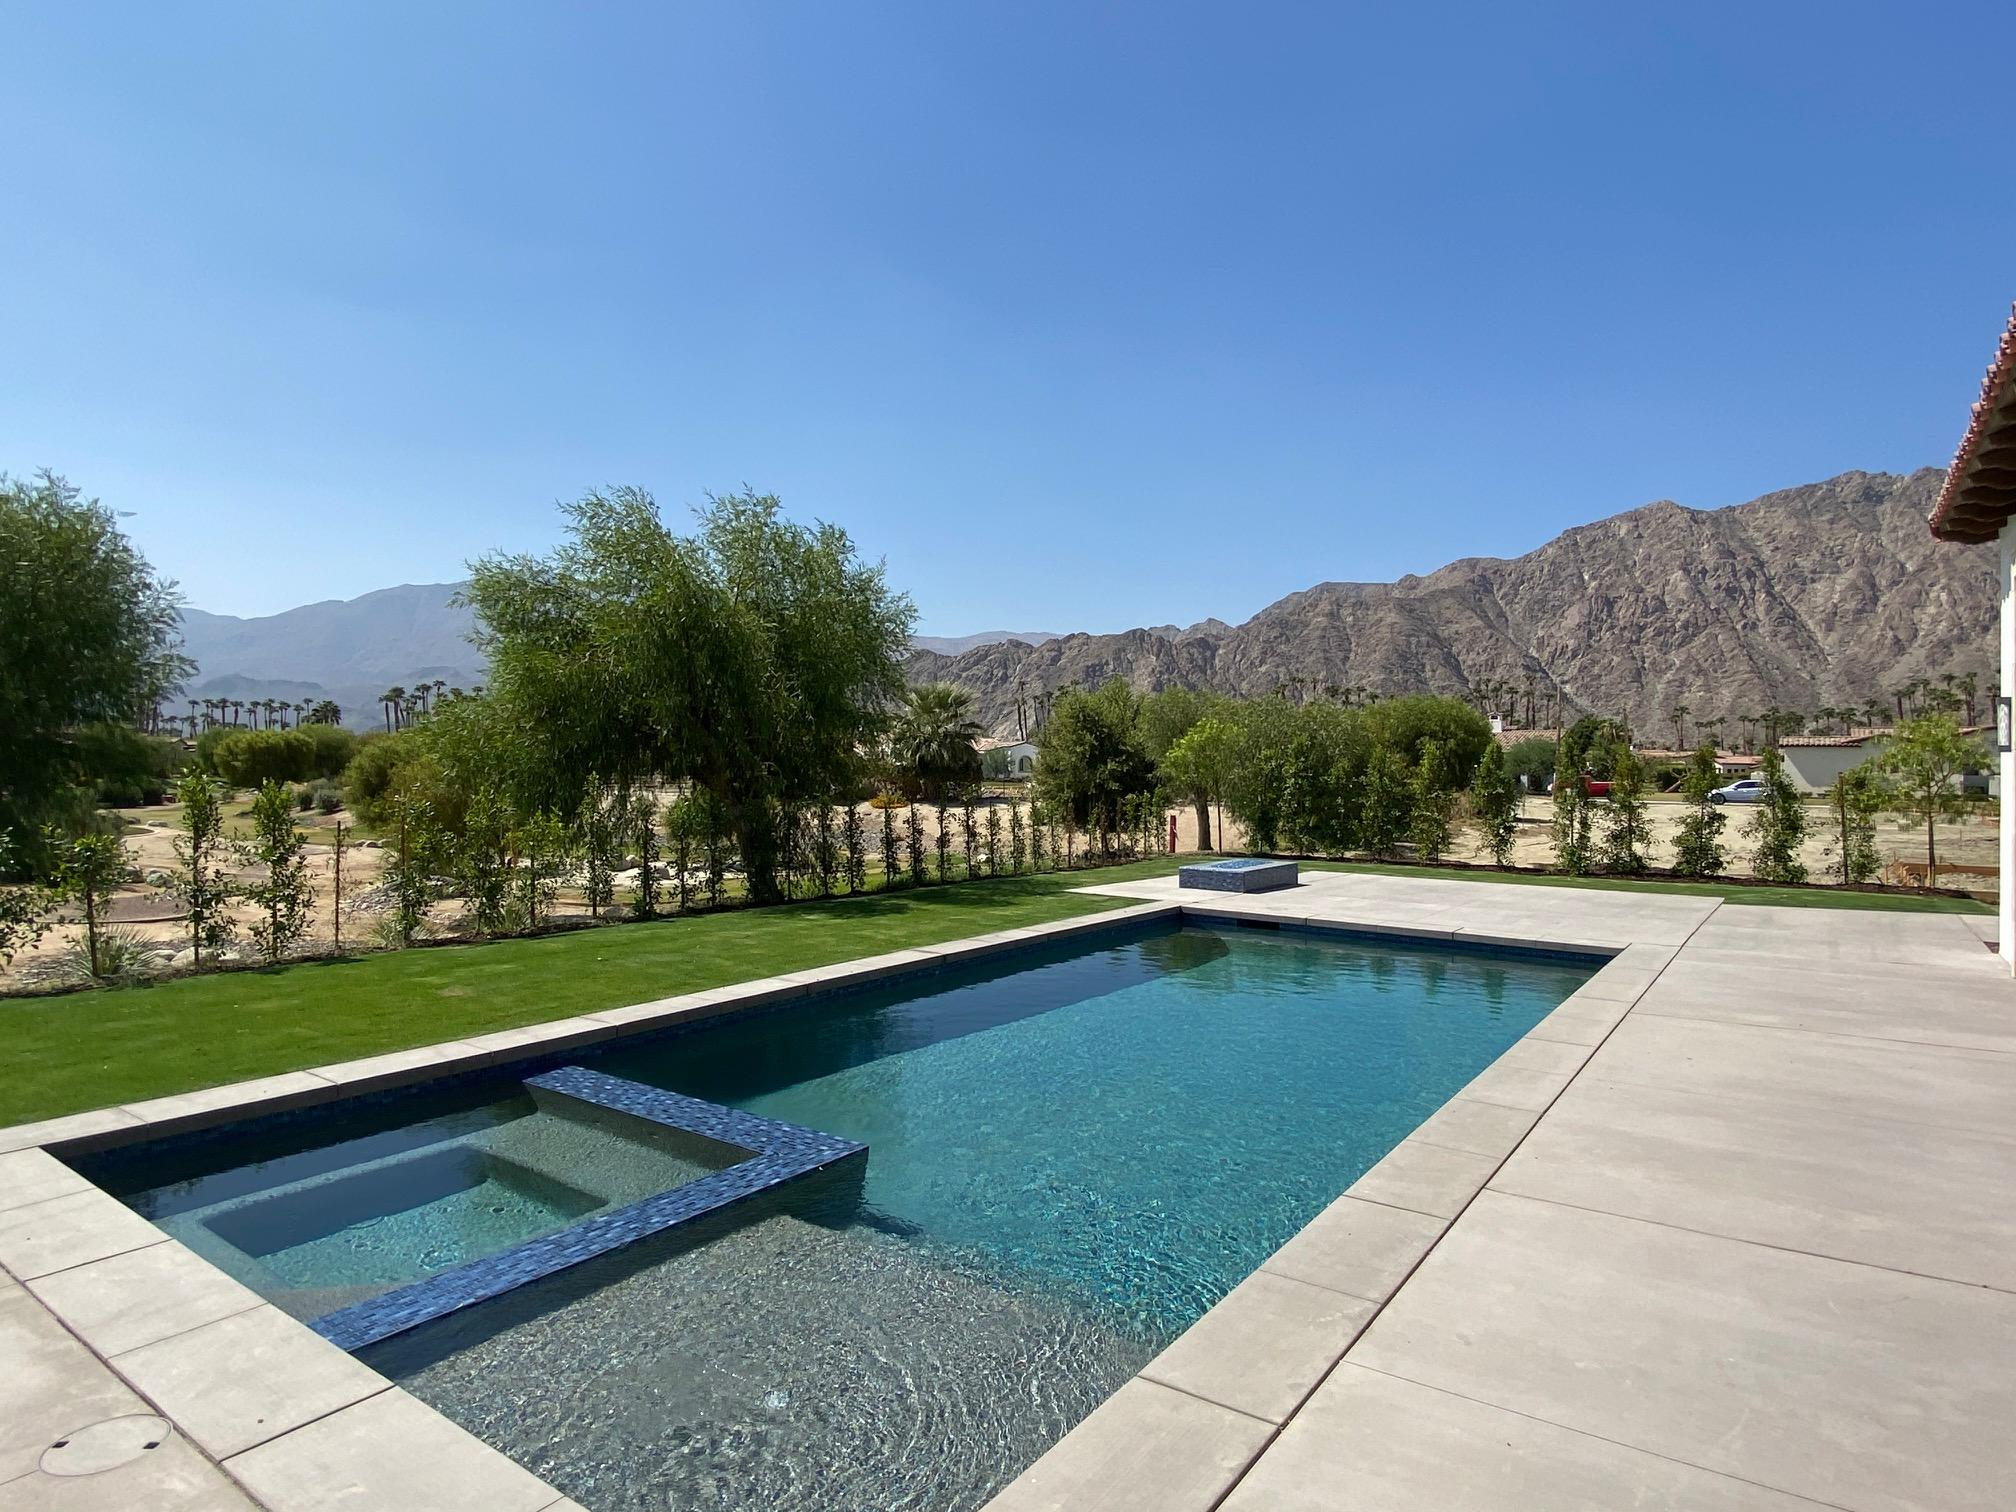 Photo of 80-185 North Residence Club Drive, La Quinta, CA 92253